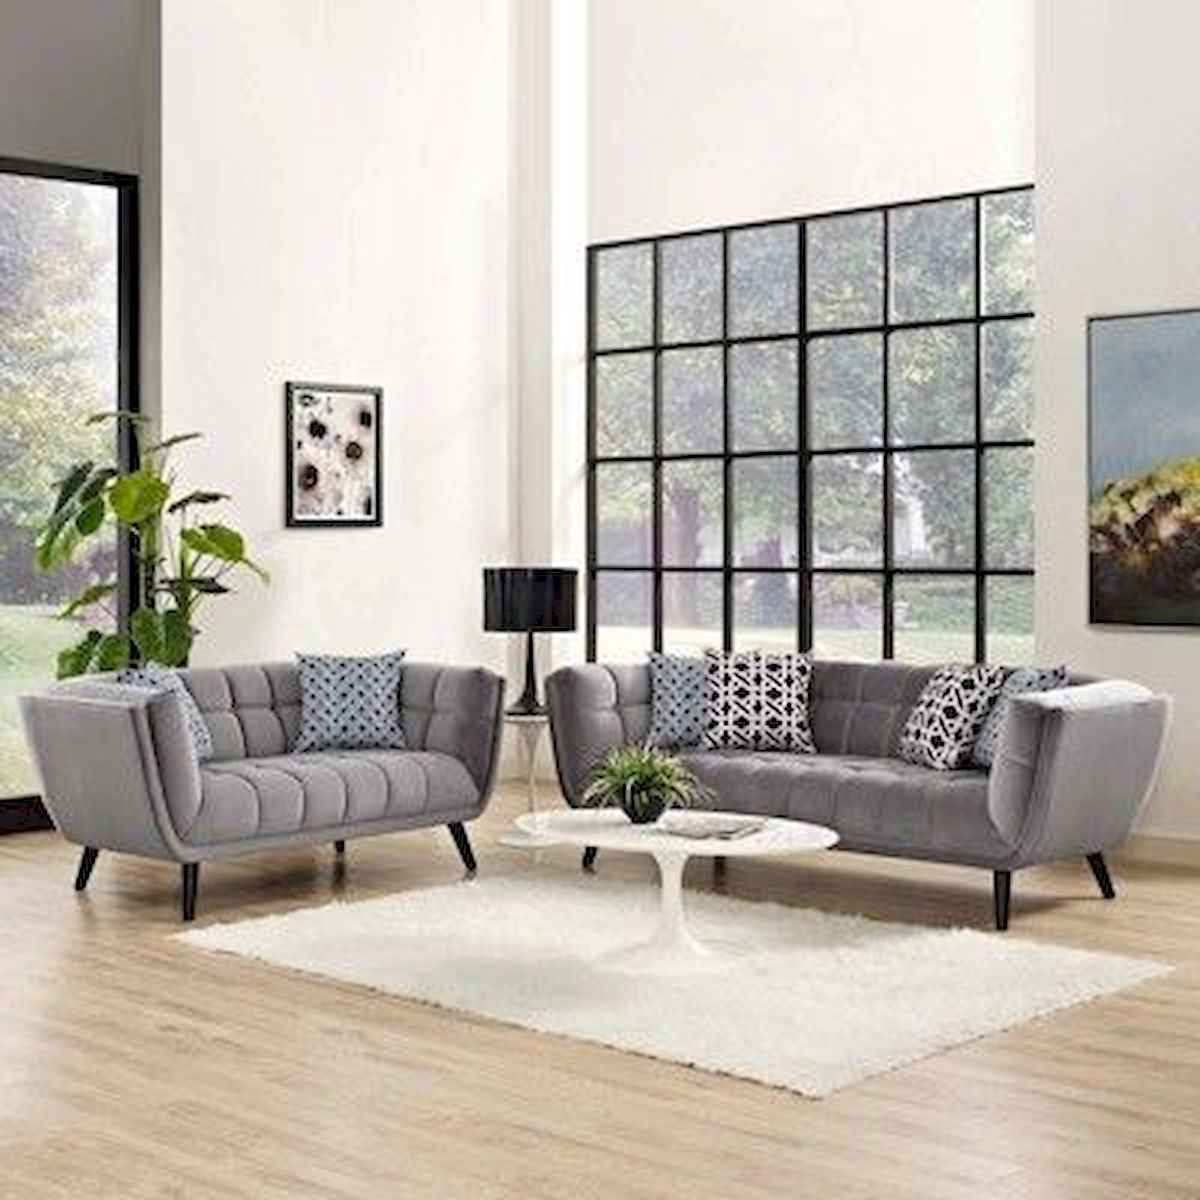 70 Stunning Grey White Black Living Room Decor Ideas And Remodel (16)